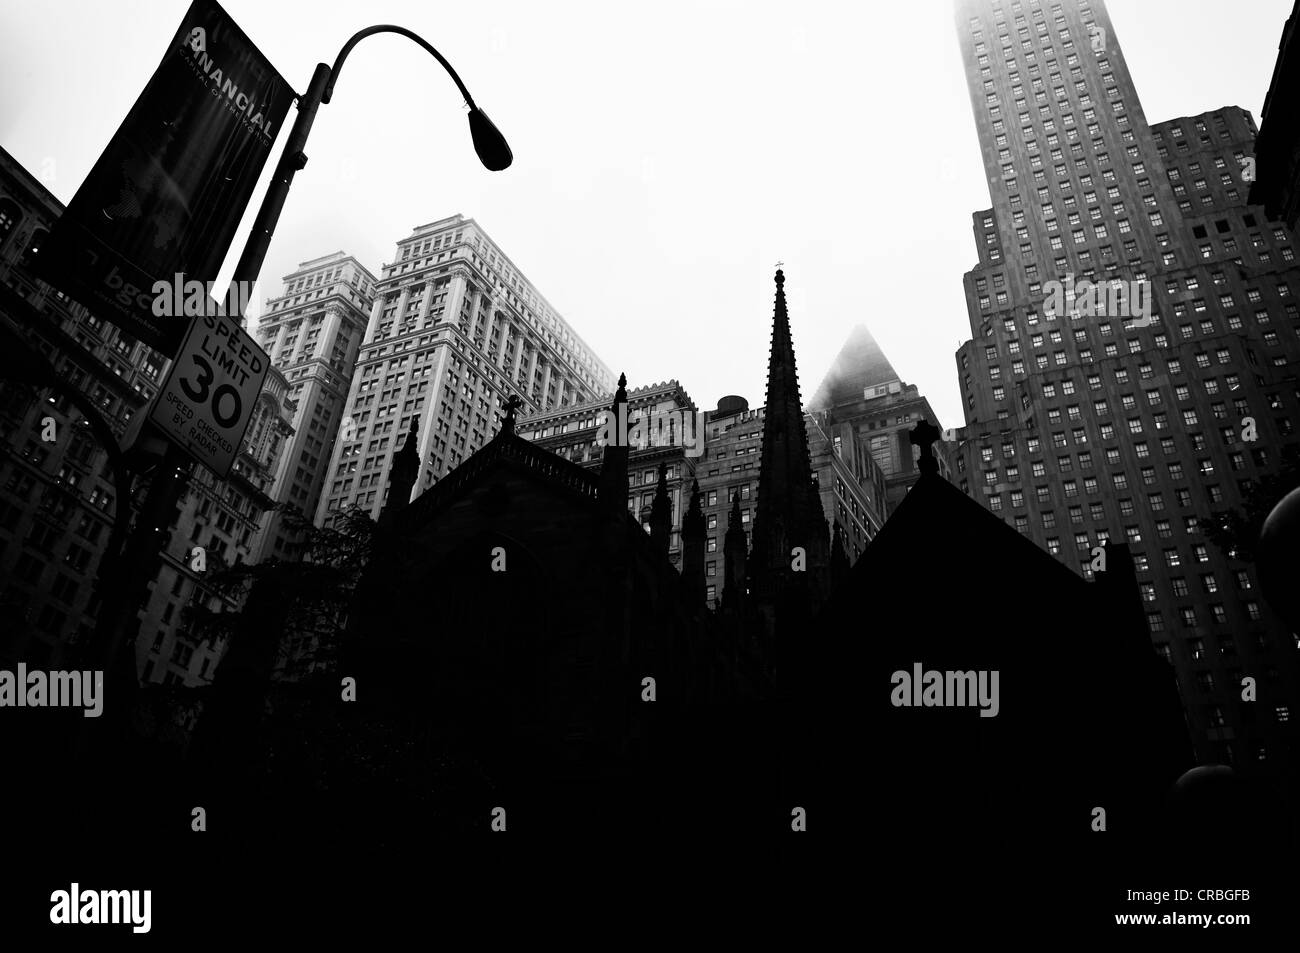 Trinity Church, Financial District, Manhattan, New York City, New York, USA - Stock Image